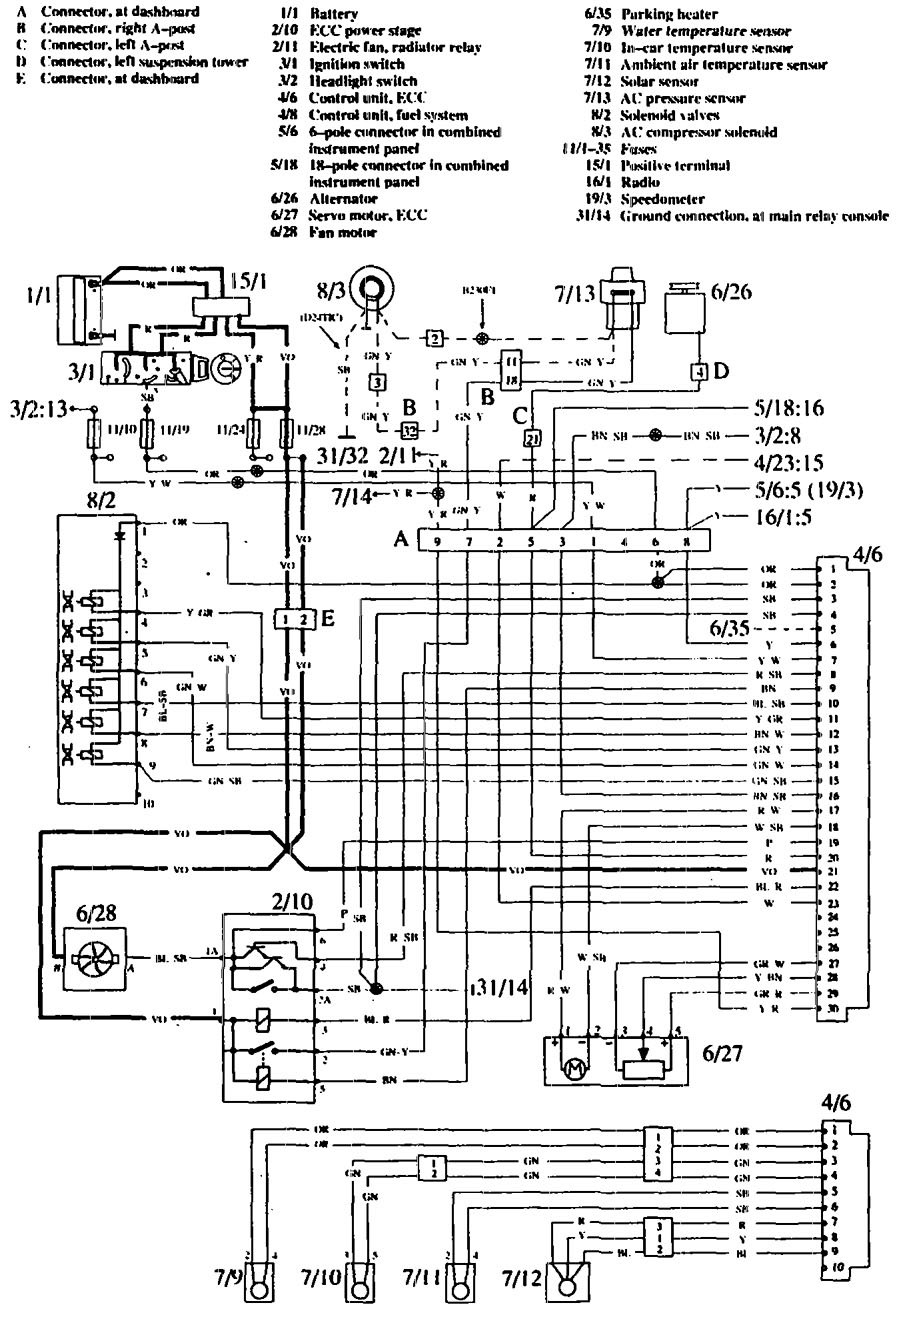 1990 Volvo 760 Wiring Diagram : 29 Wiring Diagram Images